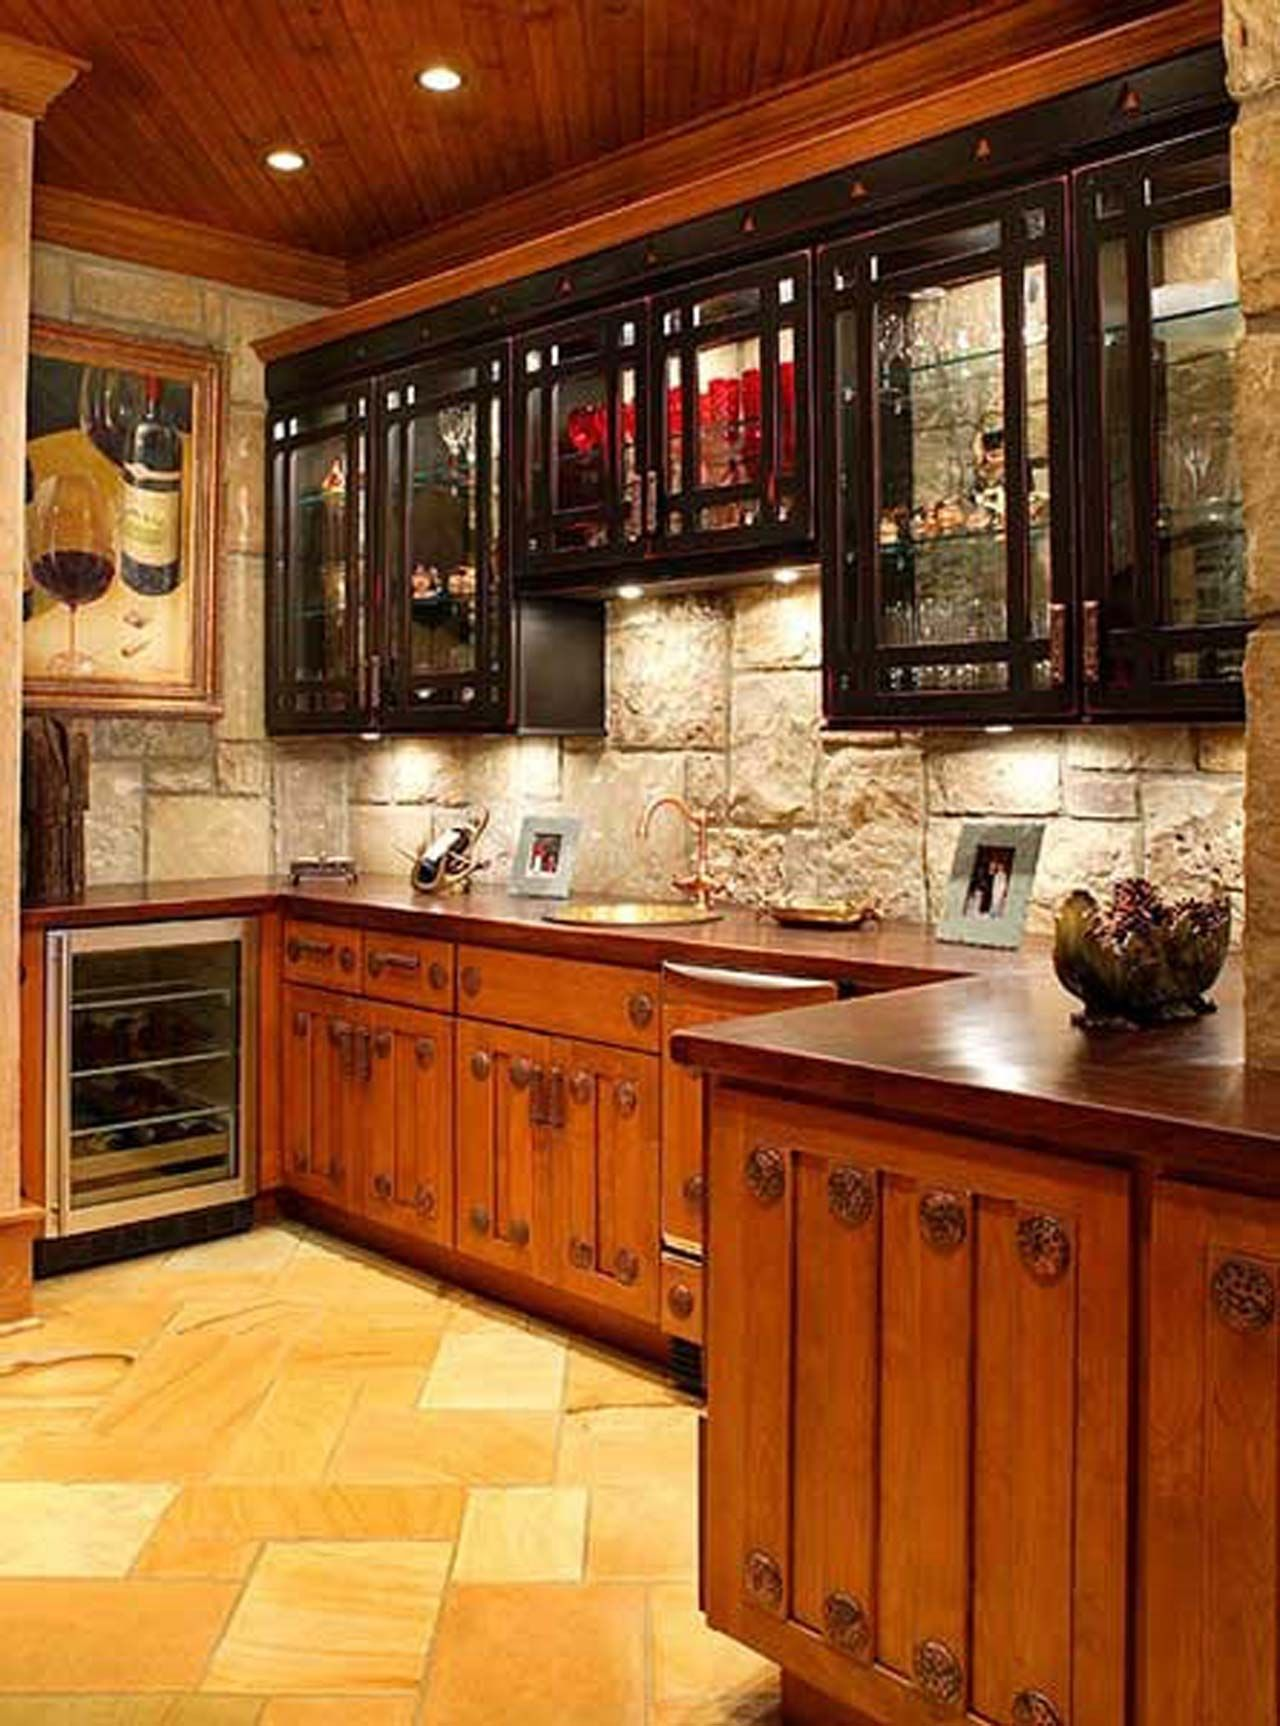 Amazing Small Rustic Kitchen Ideas ~ http://www.lookmyhomes.com/small-rustic-kitchen-design-ideas-20-photos/